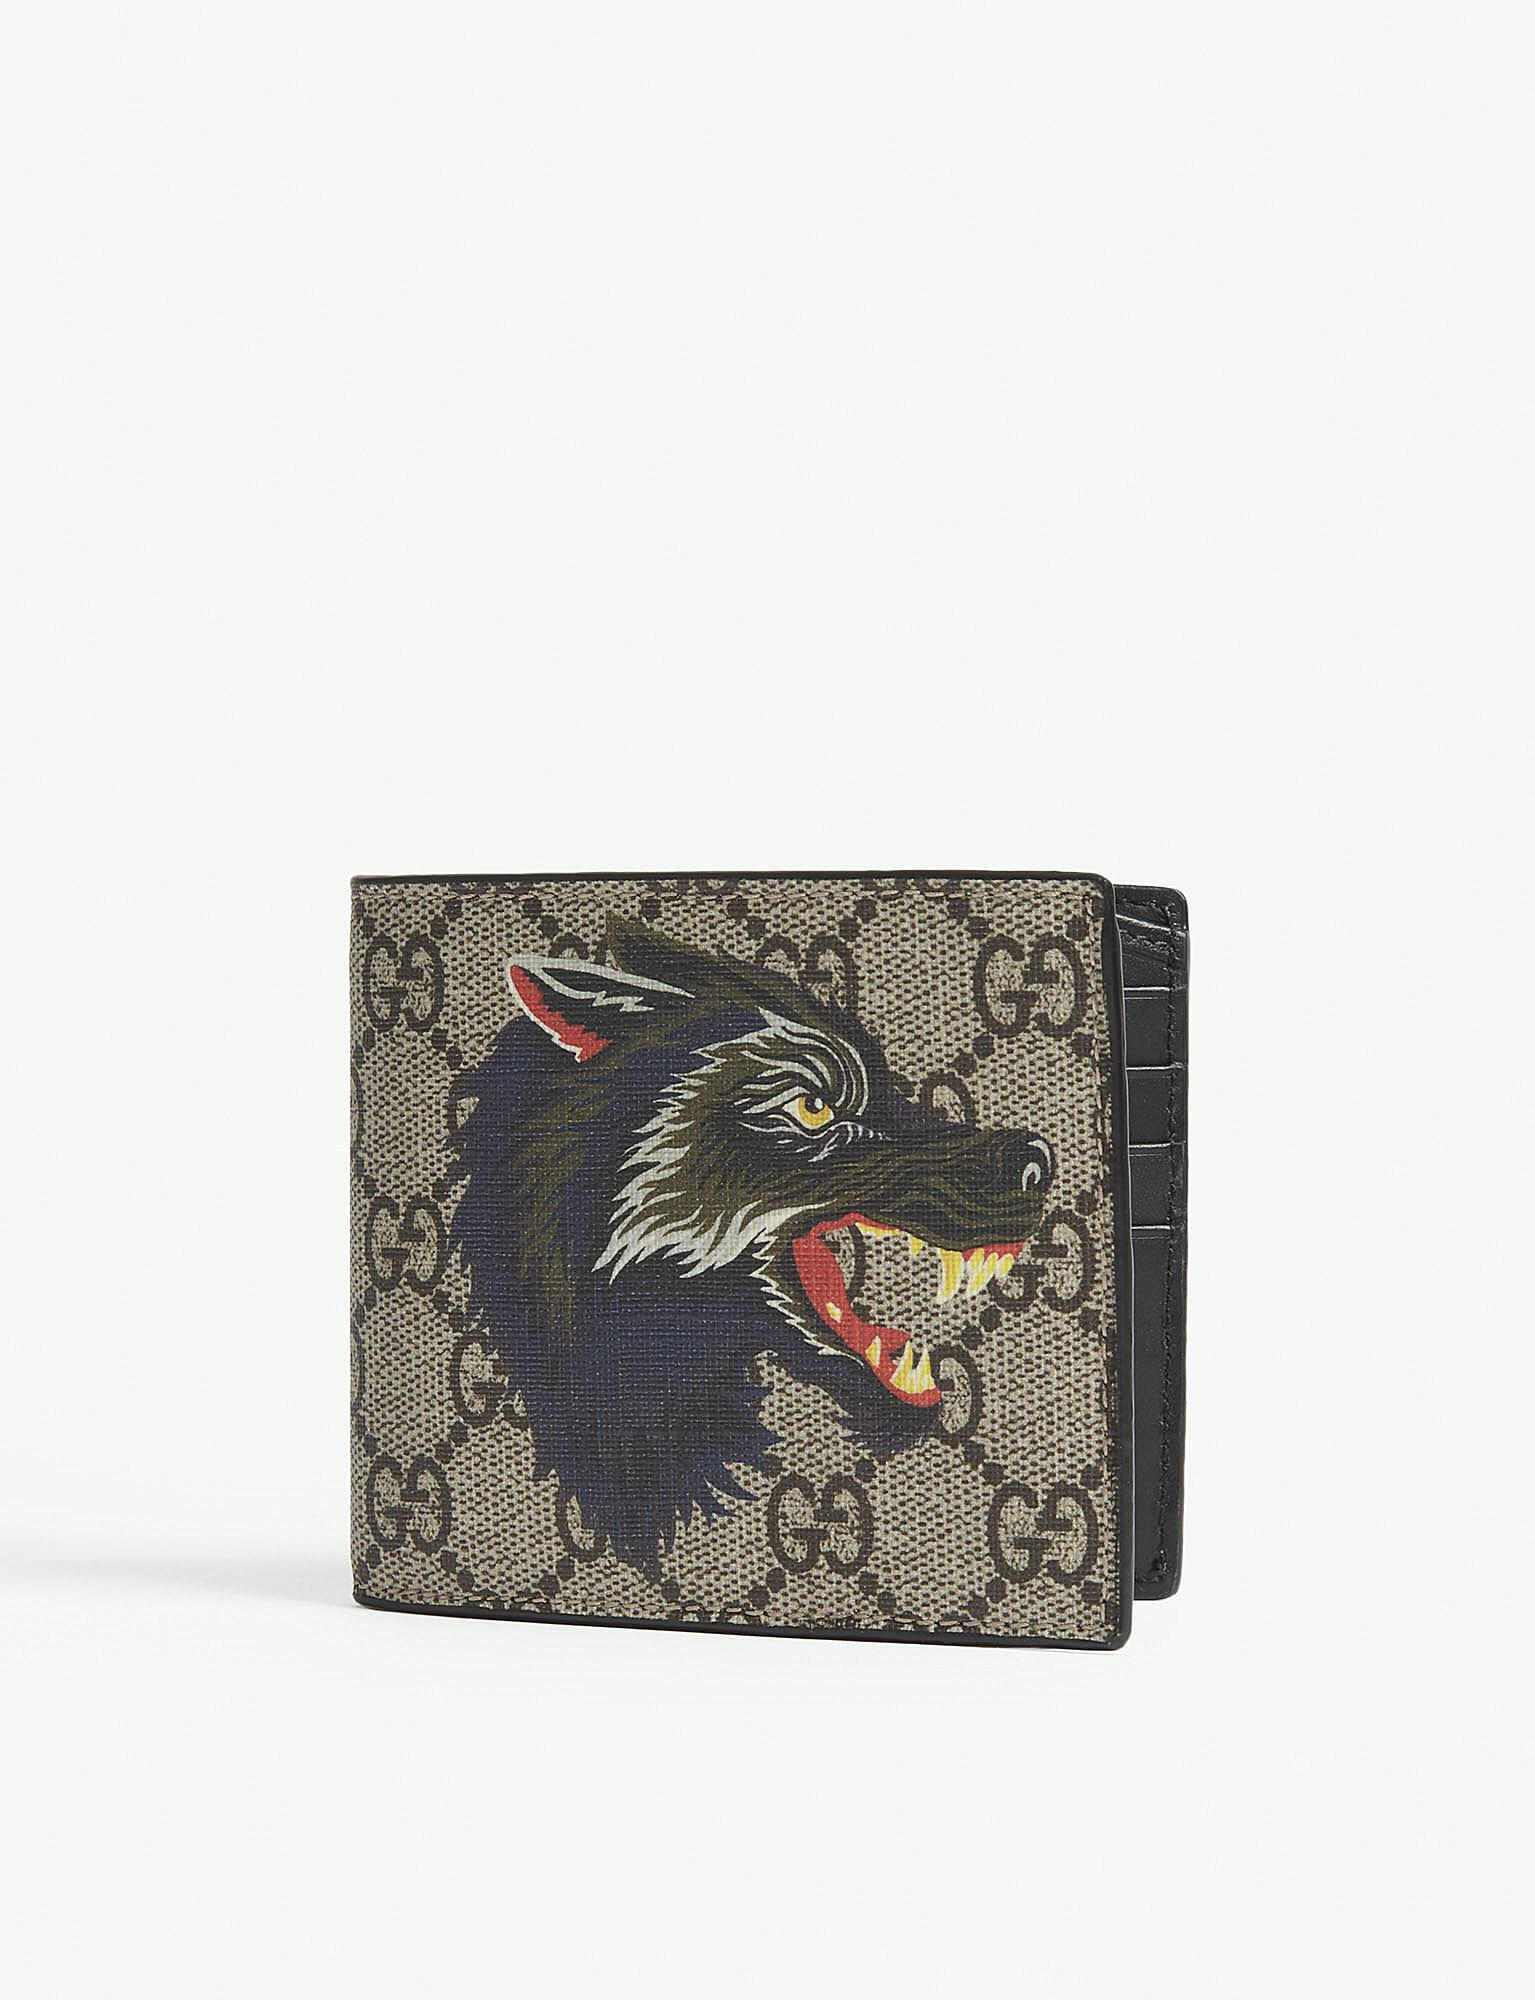 0b3baa12f72a Lyst - Gucci Wolf Print Gg Supreme Billfold Wallet in Natural